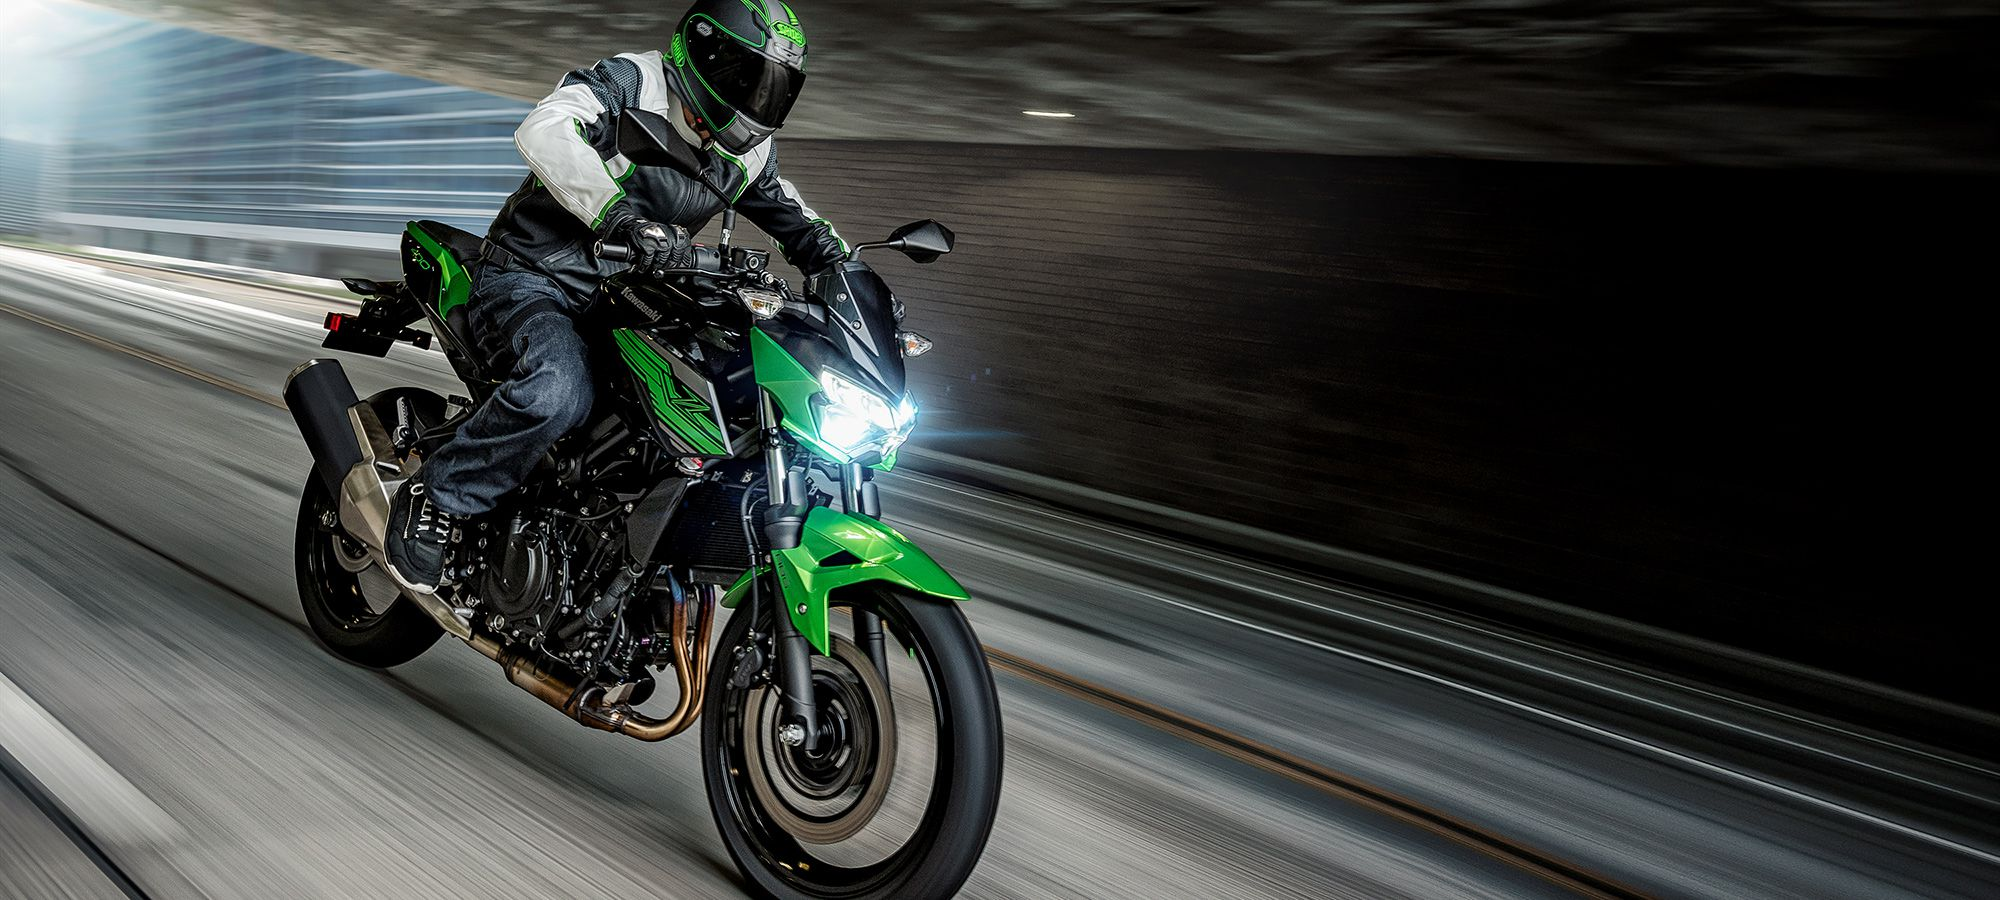 Kawasaki Introduces Z400 Entry-Level Naked For 2019 | Cycle World